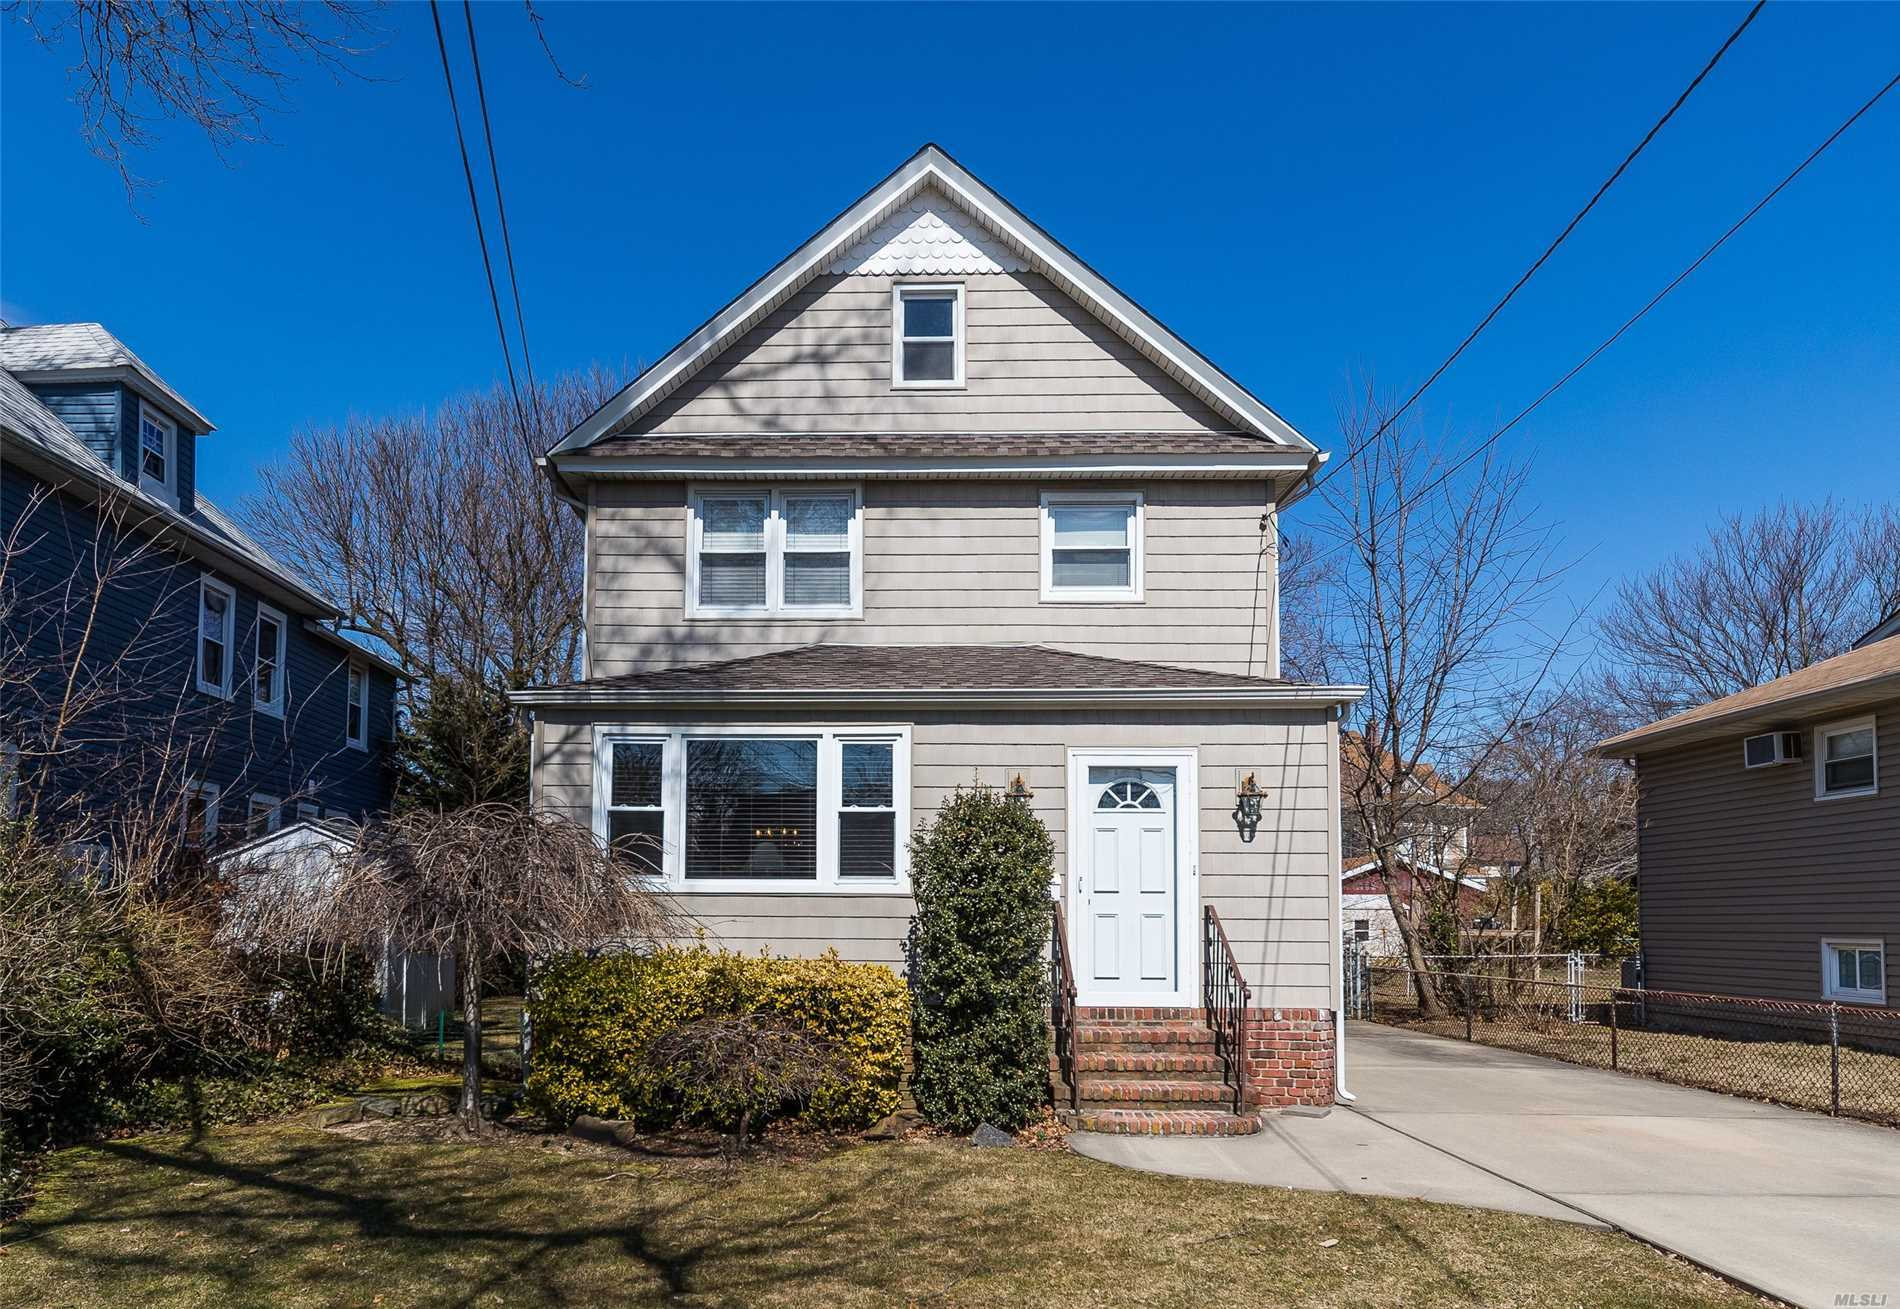 Pristine Colonial on Quiet Street in Walking Distance to Elementary School (#2), and Local Commerce. Beautiful Entry Foyer w/Gorgeous Moldings, Frml LR, DR, Chef's Kitchen w/Top of Line SS Appliances, Full BA, Great Room, Overlooking Large Deck & Private, Deep Yard. Second Flr has Large Mstr BR, 2 BR, & Over Sized Family BA, Walk Up Attic w/Great Storage. Basement Consists of Rec Rm, Utilities. All New Windows Throughout Home.